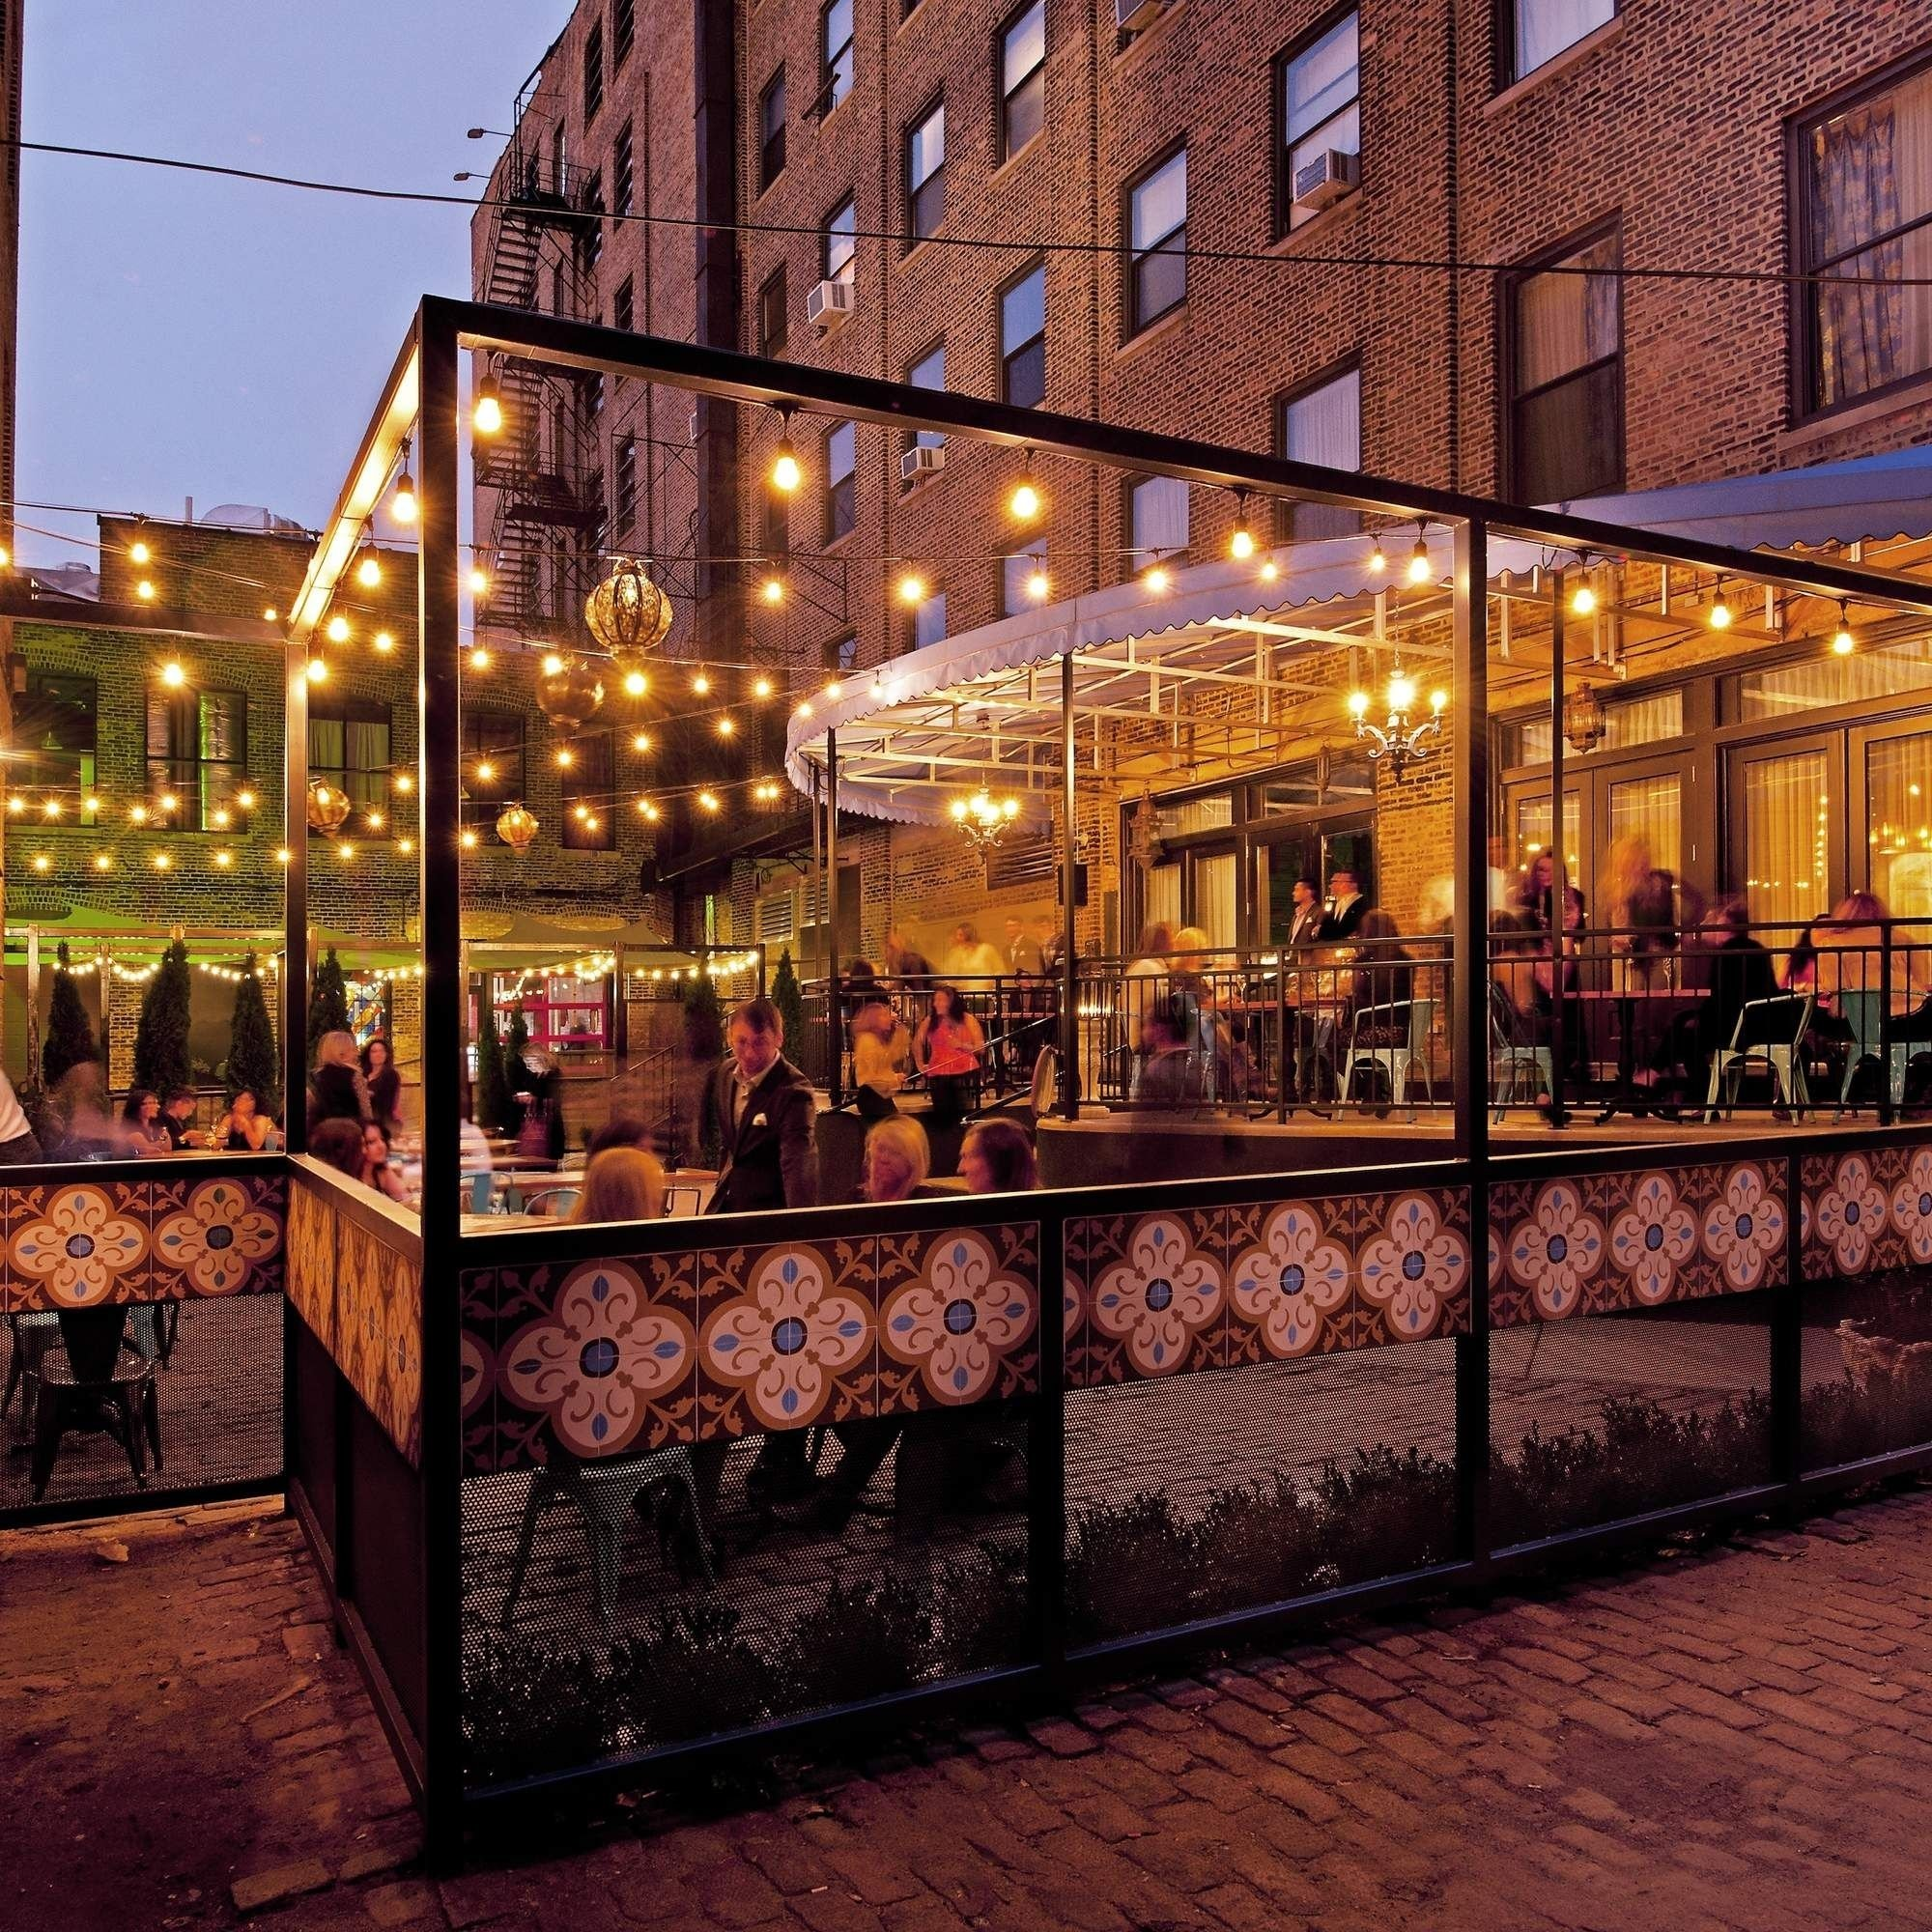 10 Gorgeous Romantic Date Ideas In Chicago the most romantic restaurants in chicago chicago romantic and 2020